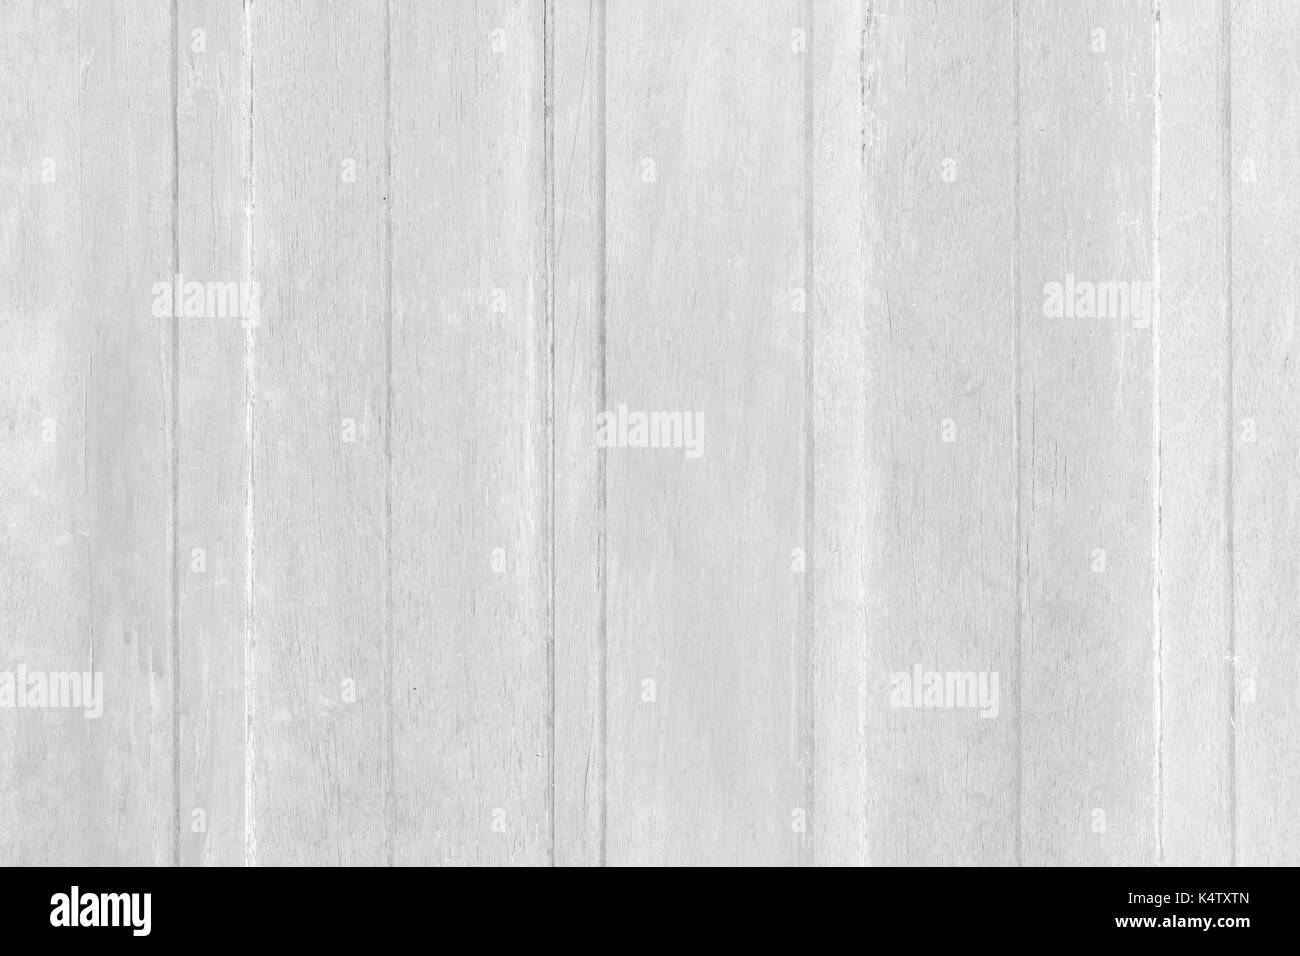 Vintage surface white wood table and rustic grain texture background. Close up of dark rustic wall made of old wood table planks texture. Rustic wood  - Stock Image